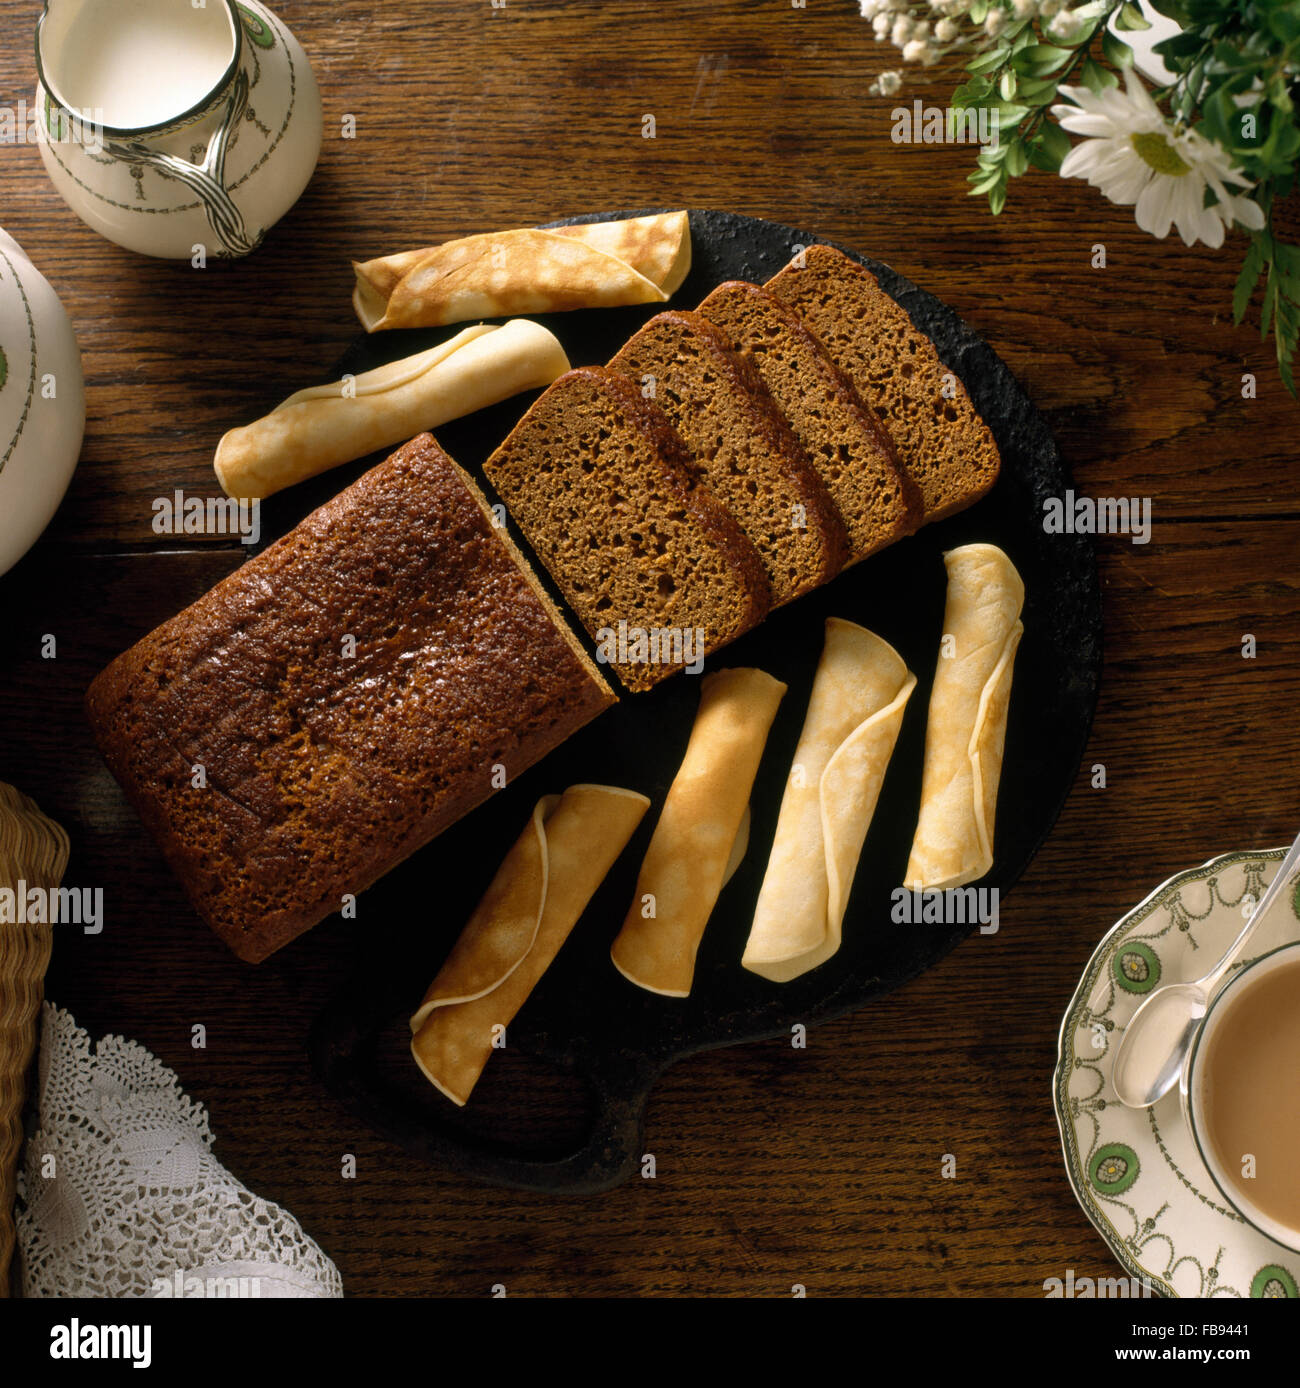 Close-up of home made ginger cake and pancakes - Stock Image